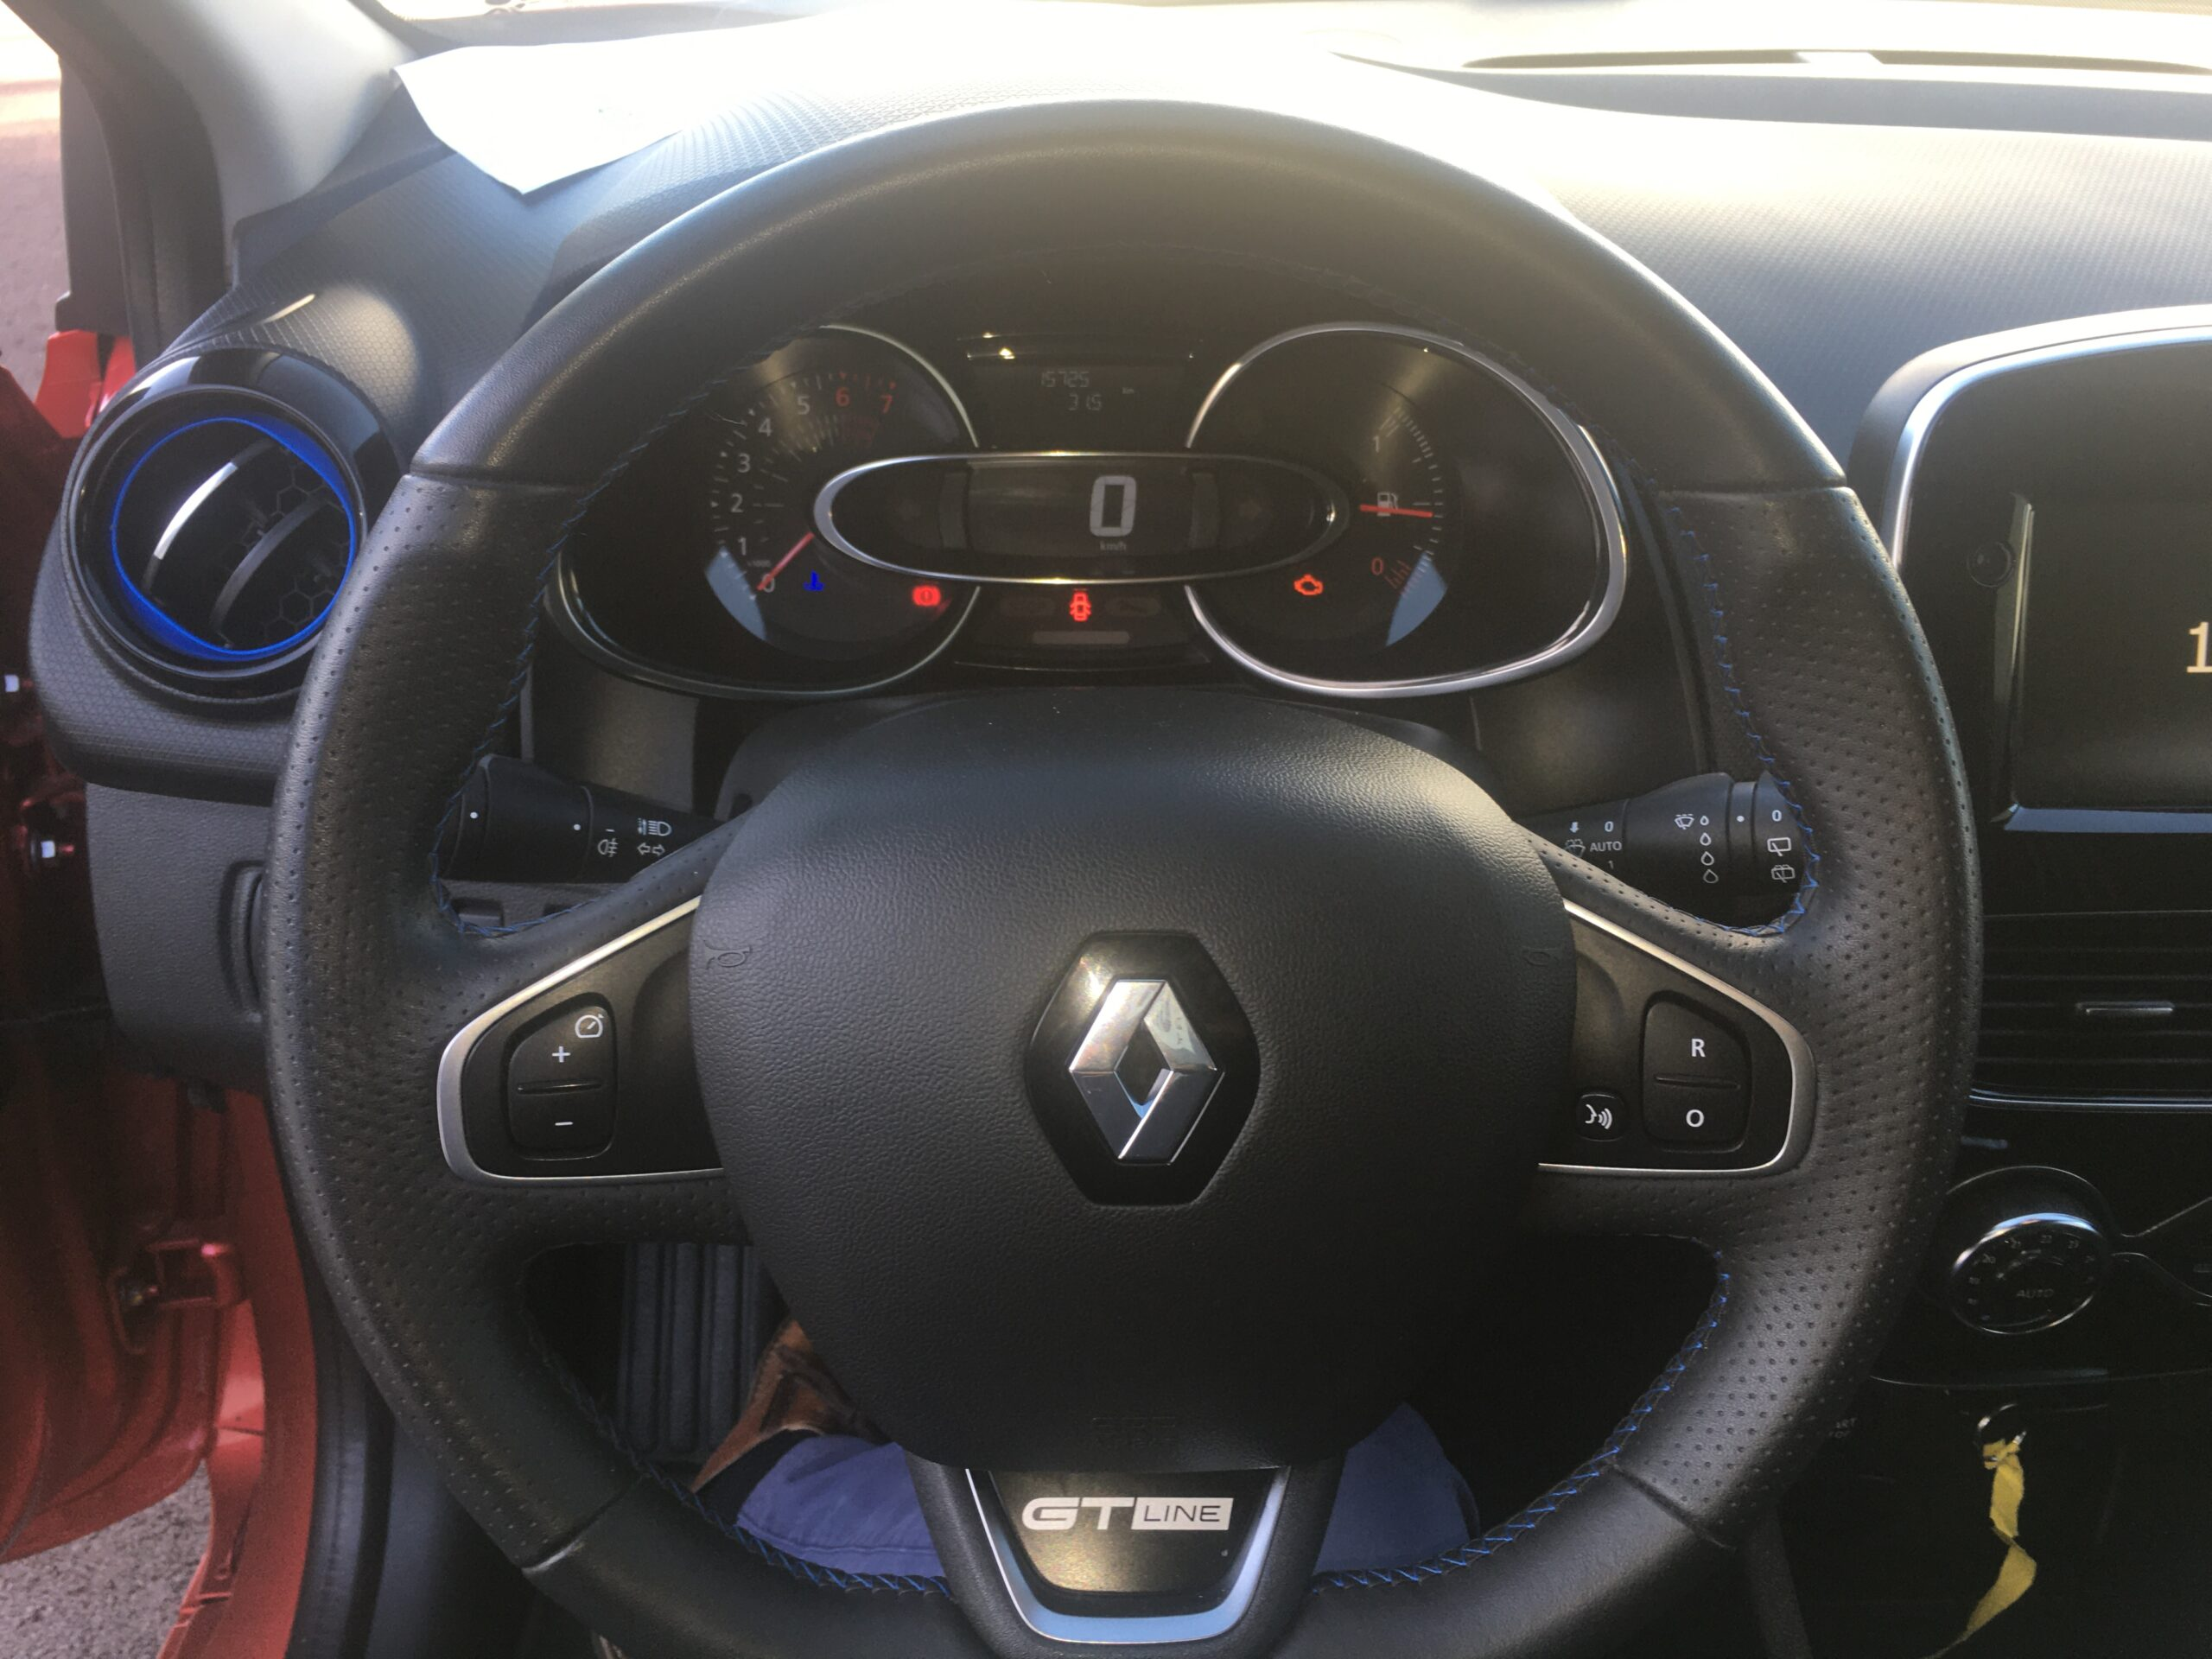 RENAULT Clio 0.9 TCE GT Line full